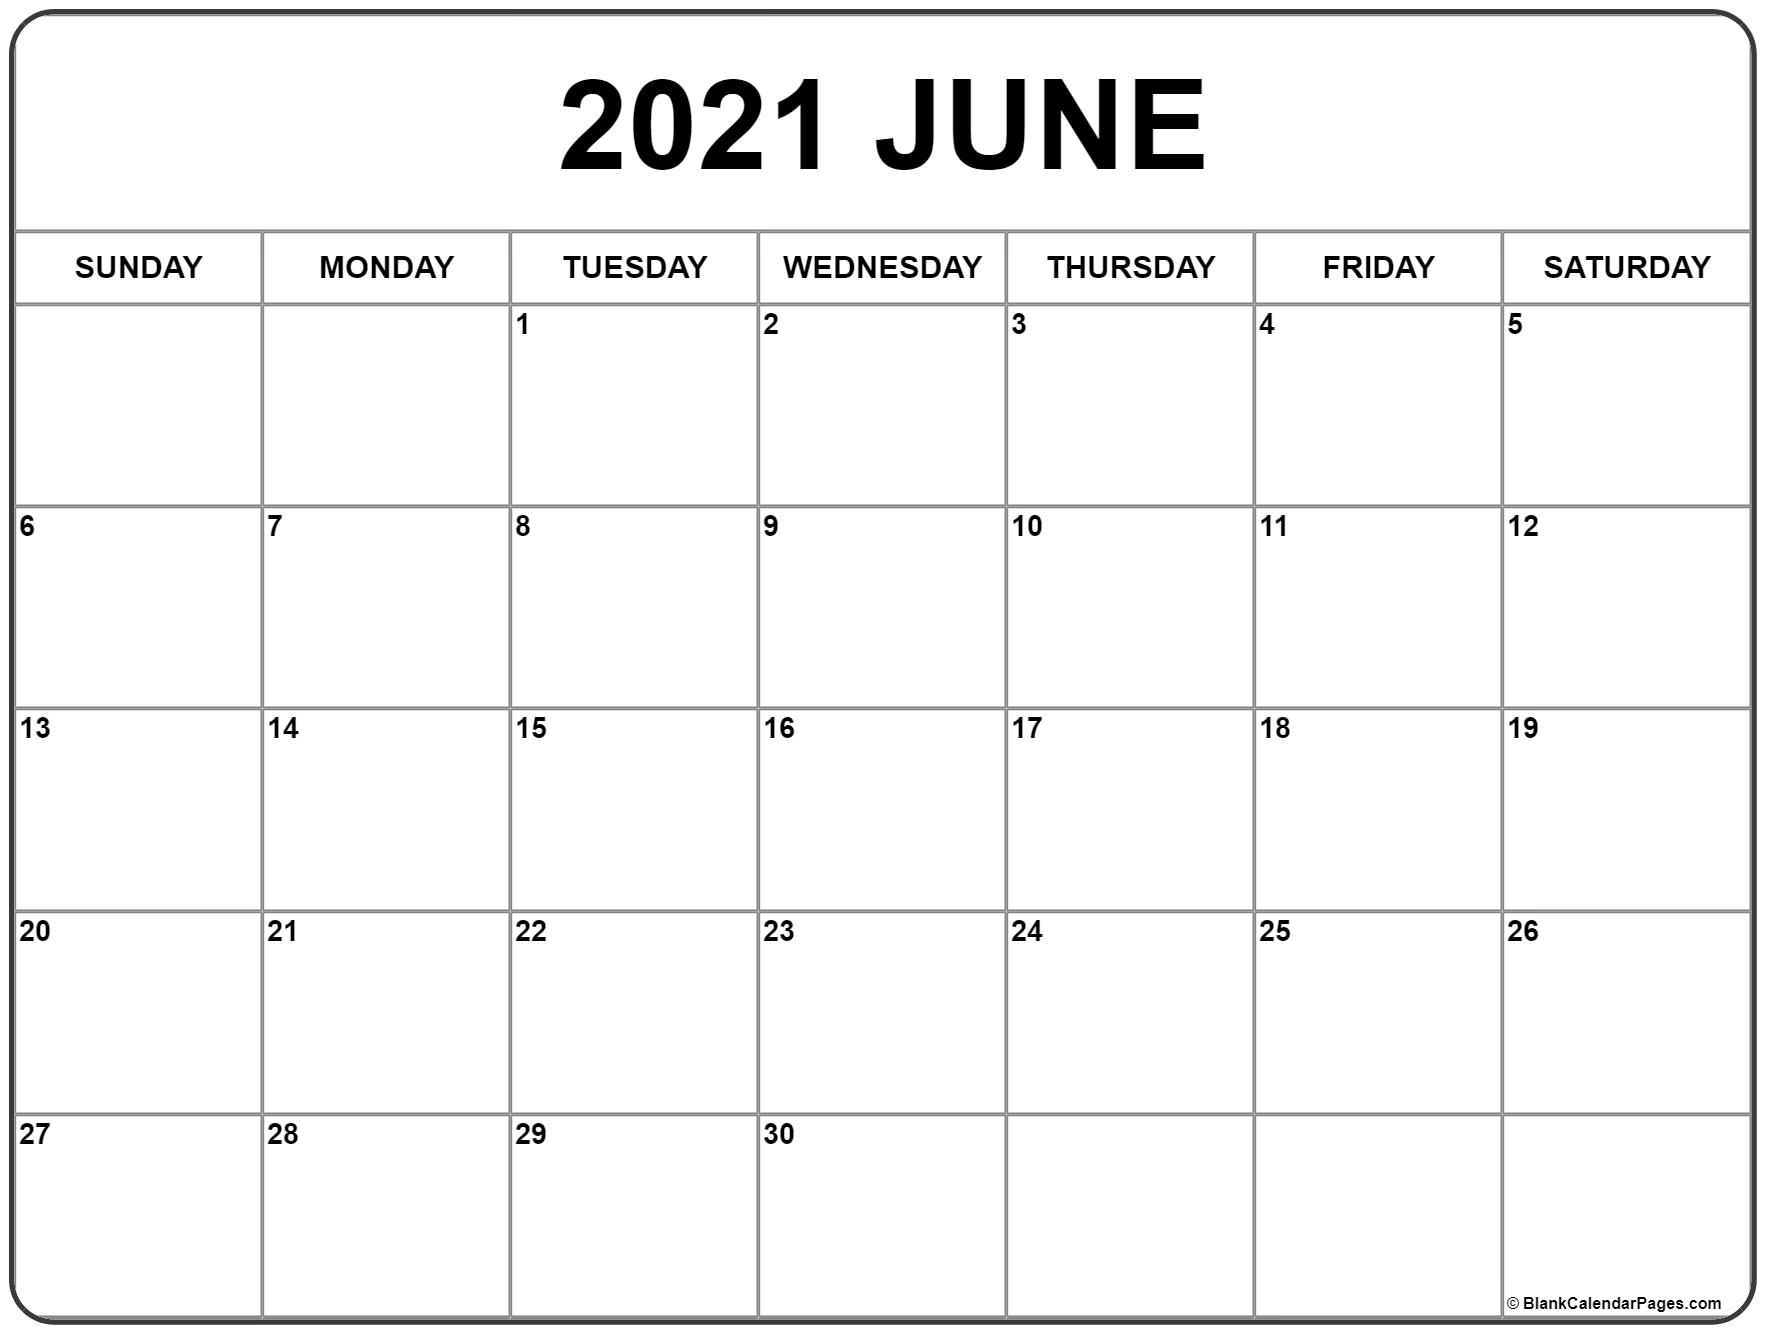 June 2021 Calendar | Free Printable Monthly Calendars  Free Monthly Calendar Template 2021